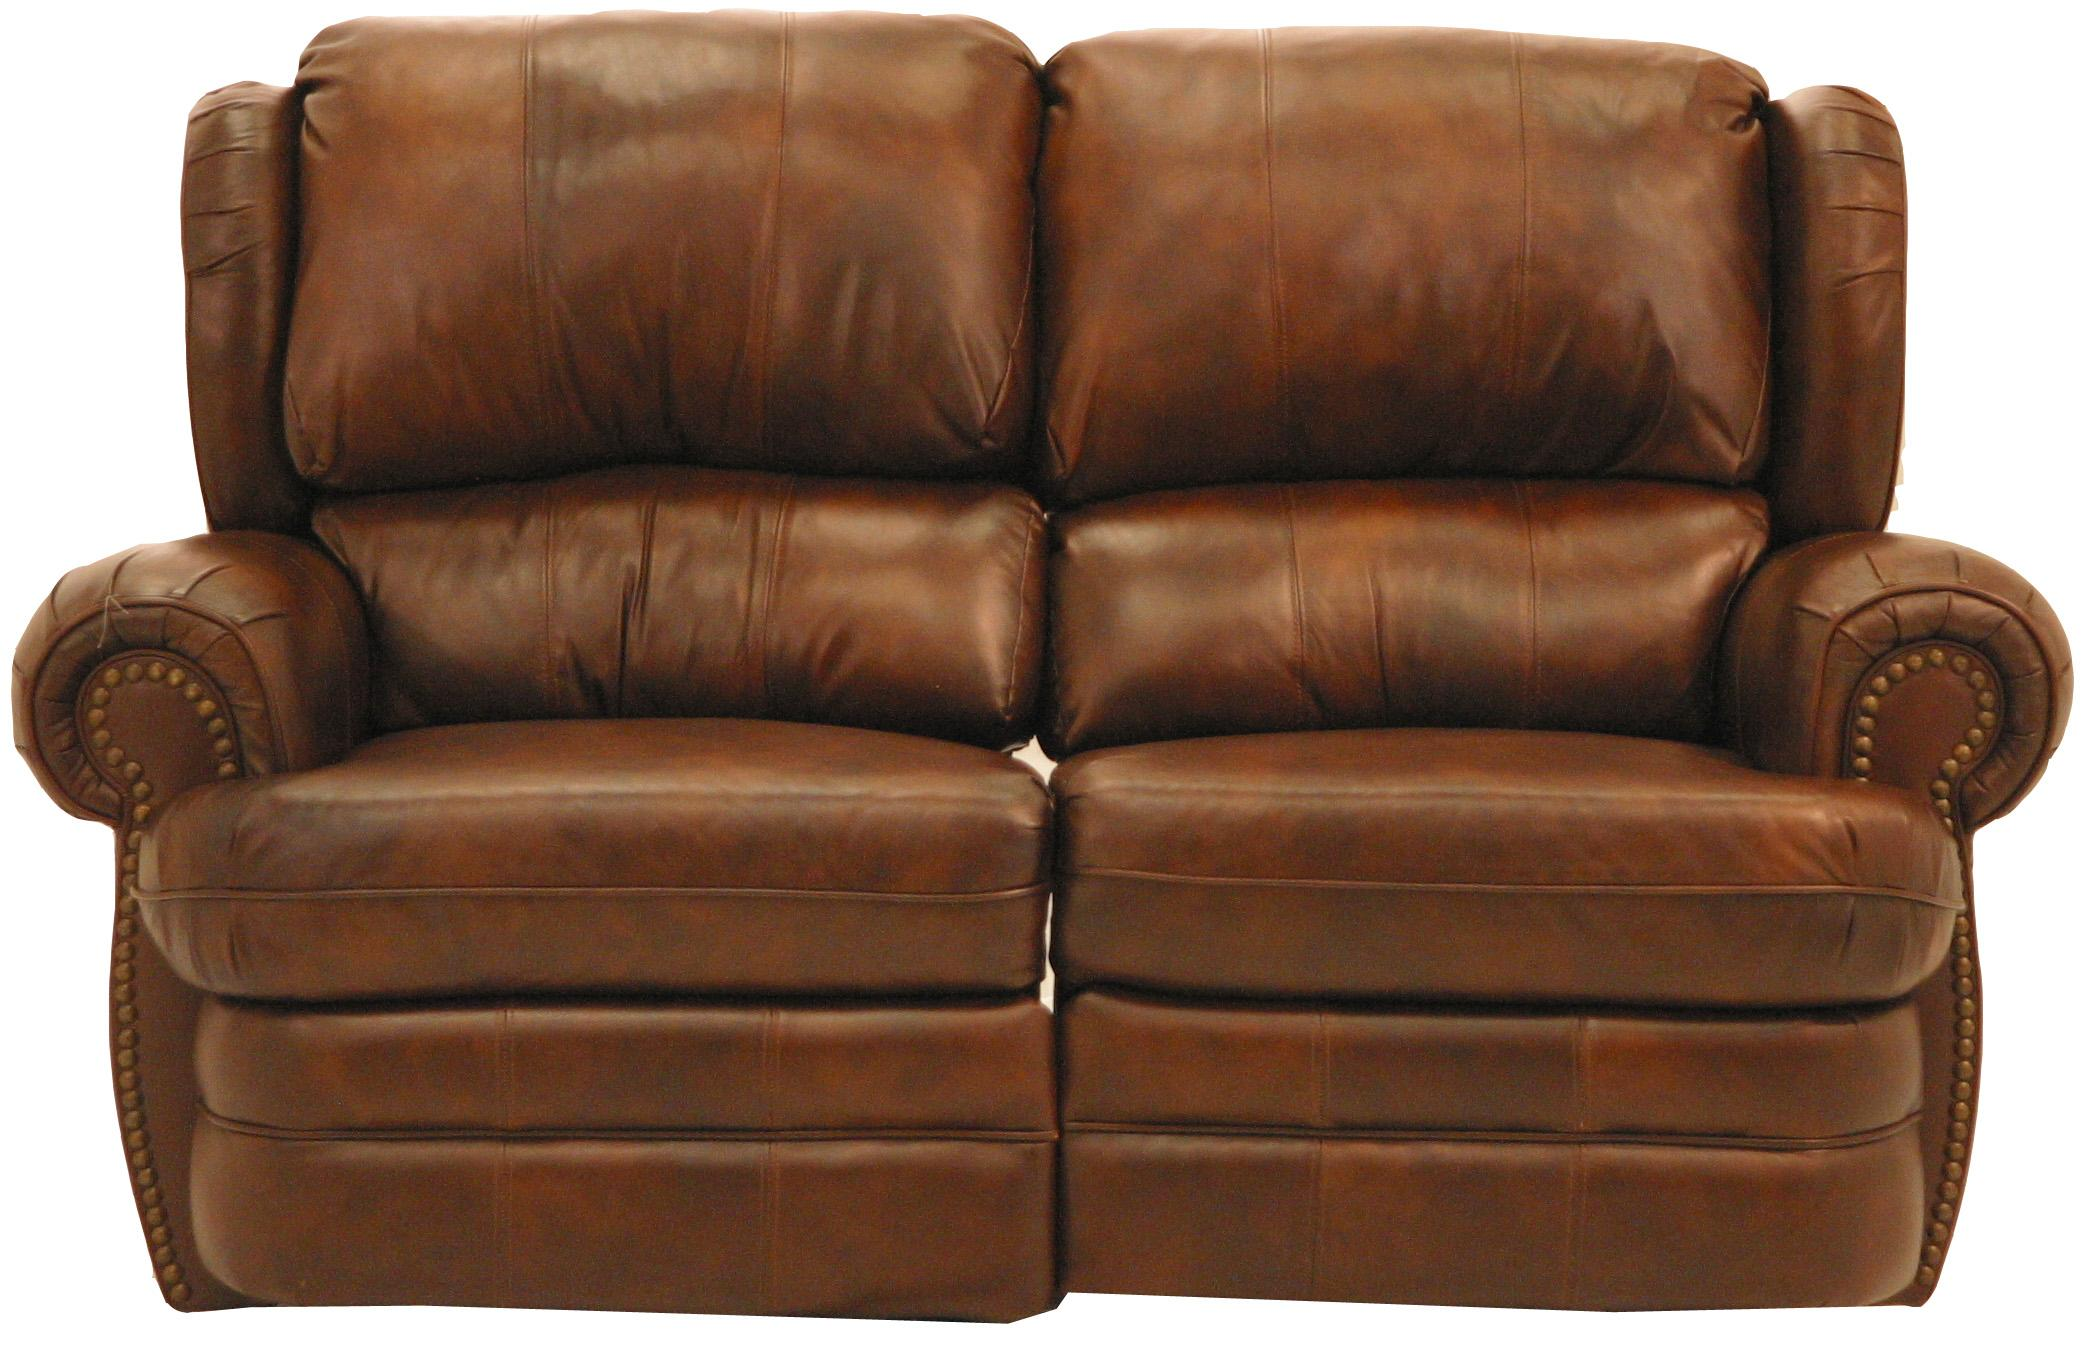 Lane Hancock Reclining Loveseat Mueller Furniture Reclining Love Seat